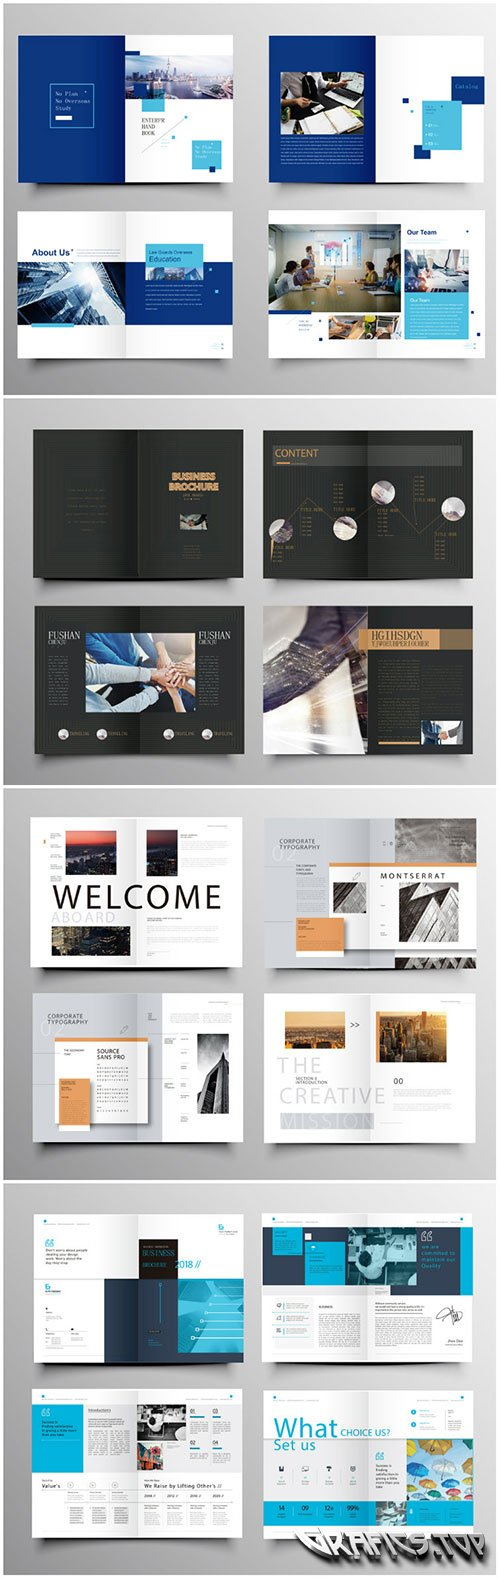 Brochure template vector layout design, corporate business annual report, magazine, flyer mockup # 235